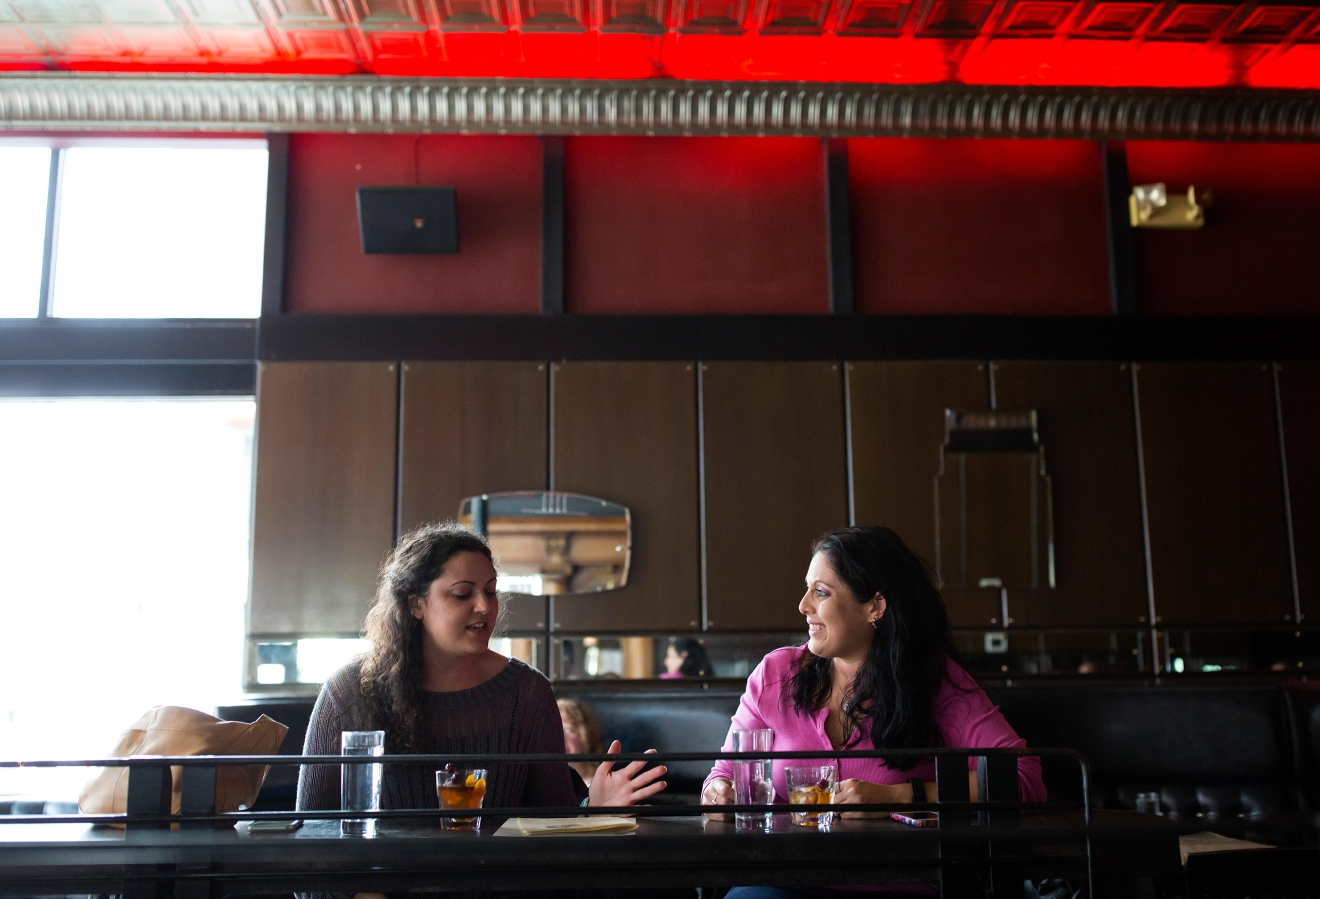 Anna Geisler, right, and Debi Scheenstra, chat over drinks as they visit Tini Bigs Lounge on its final day of business. (Sy Bean / Seattle Refined)